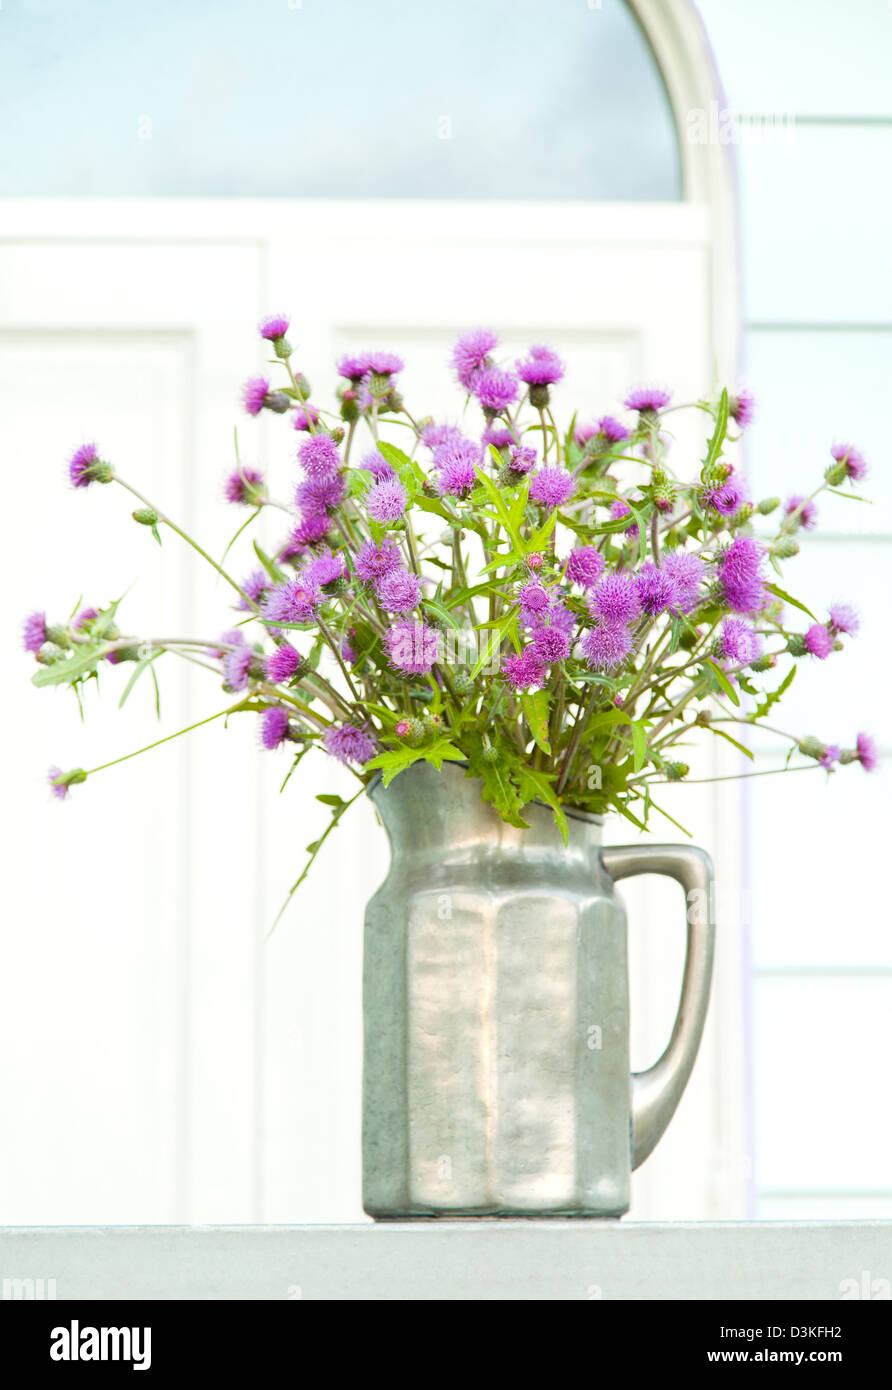 Flower Vase With Thistle Stock Photos & Flower Vase With Thistle ...